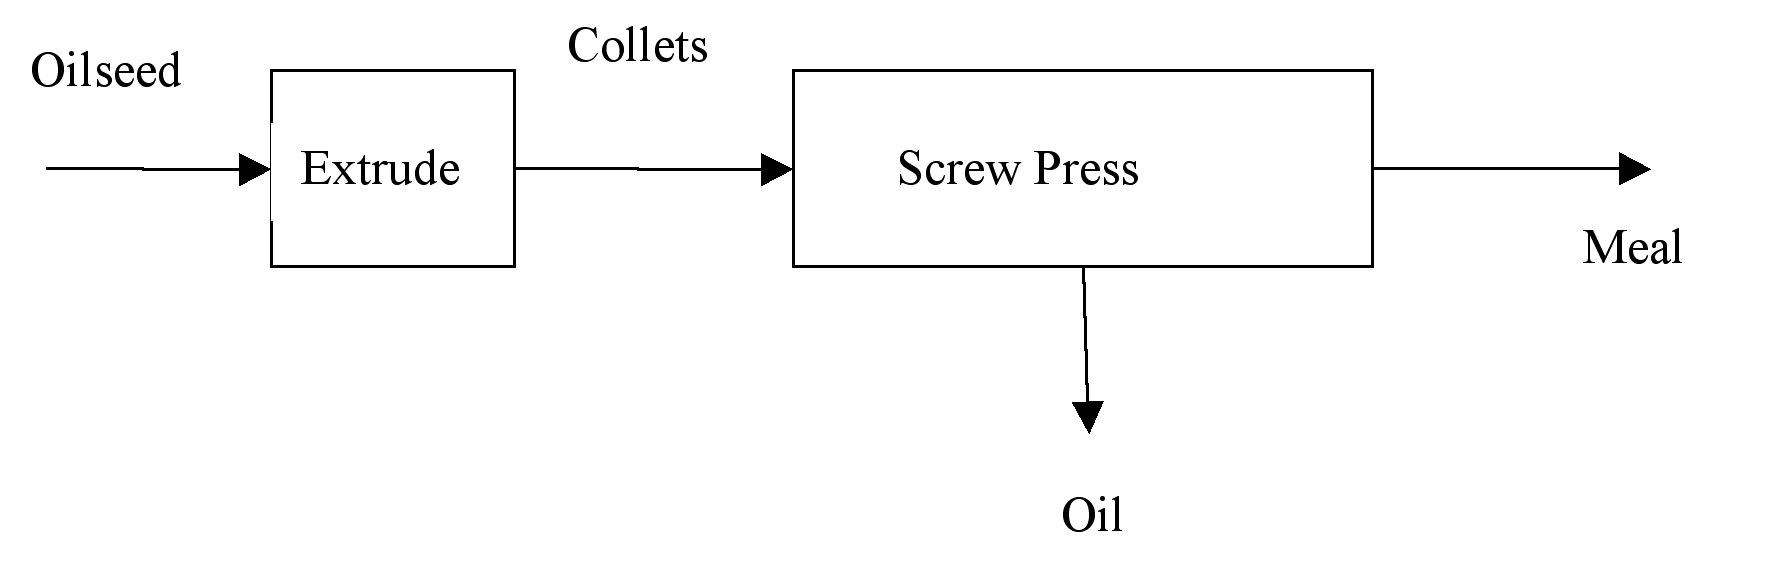 hight resolution of figure 2 flow diagram of an extrusion expelling e e process